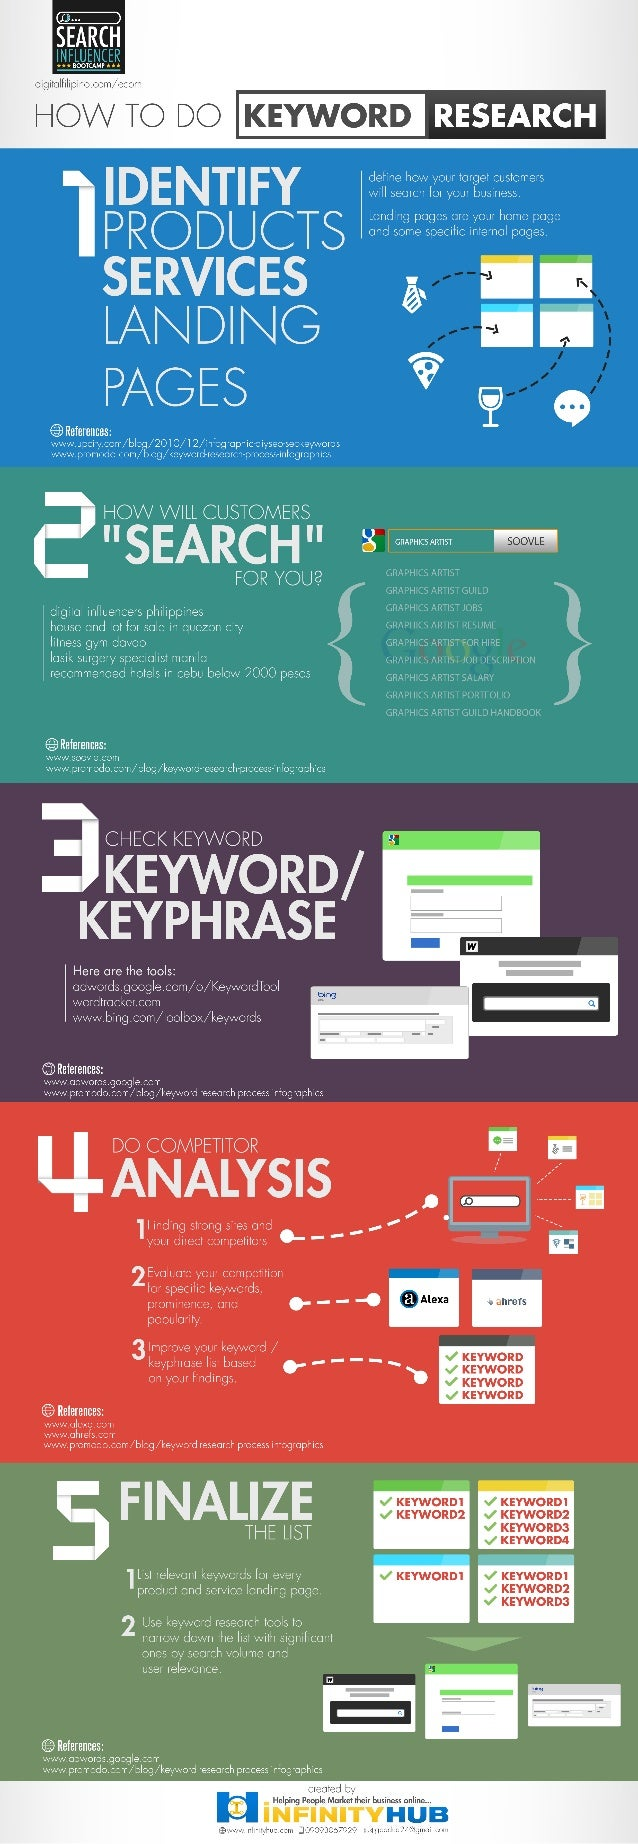 How to Search for Keywords #infographic #searchbootcamp